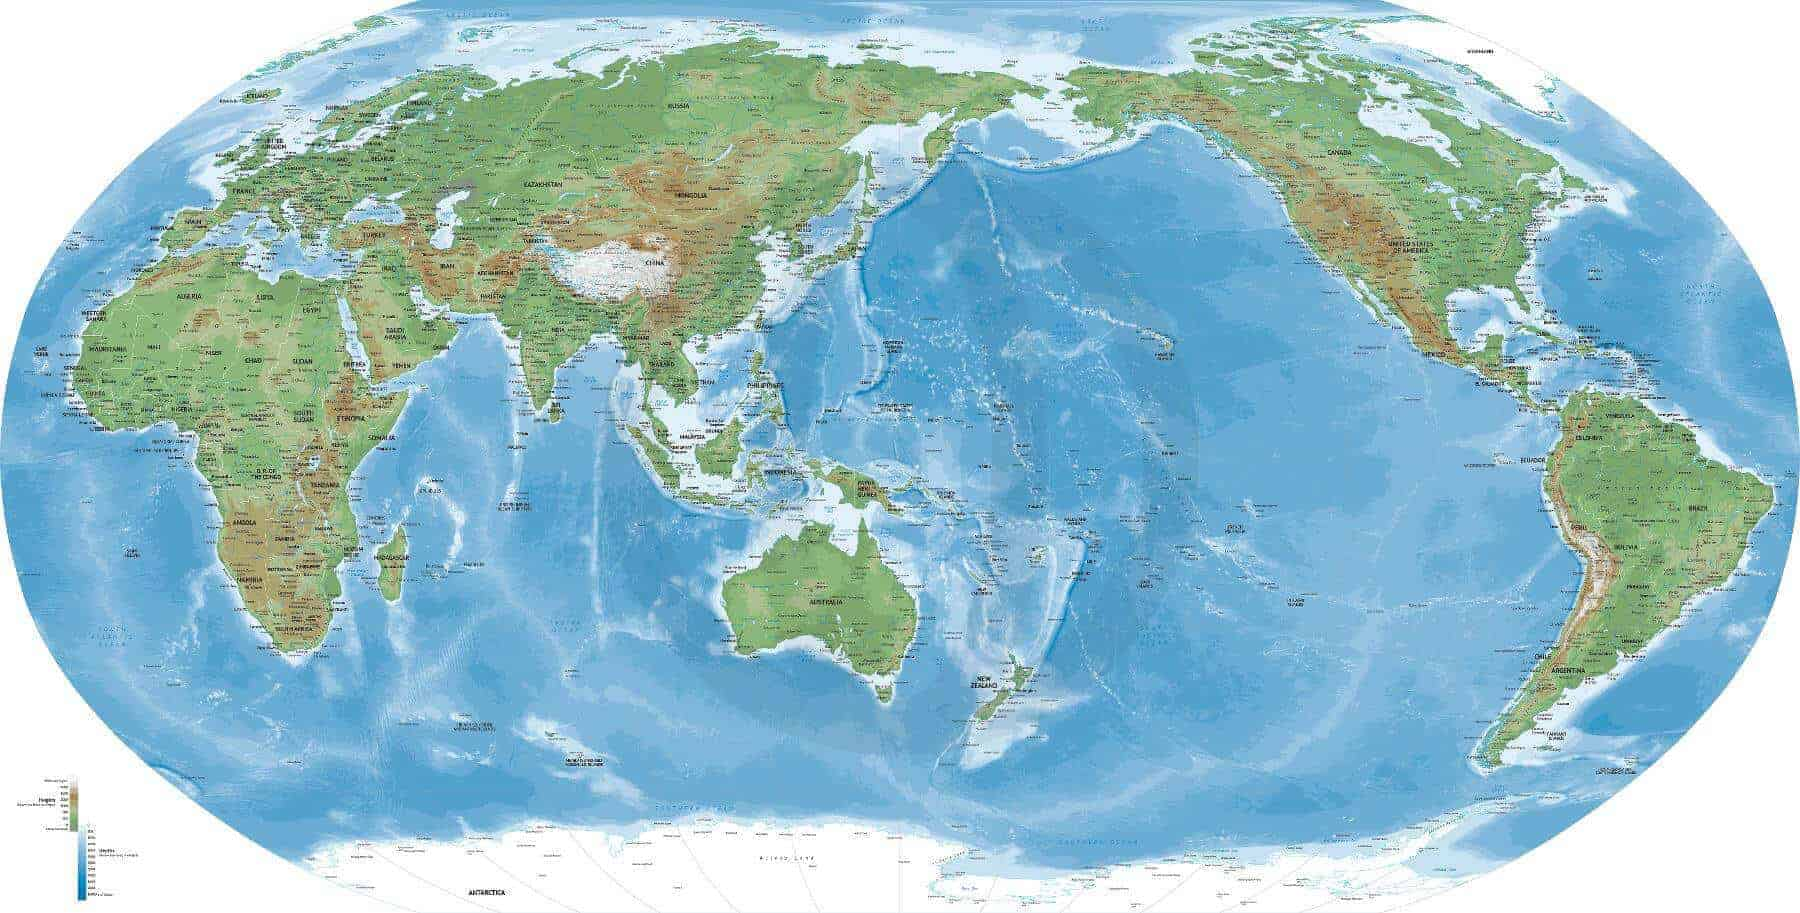 World Map With Australia.Naturalist Map Of The World High Detail Robinson Asia And Australia Centered